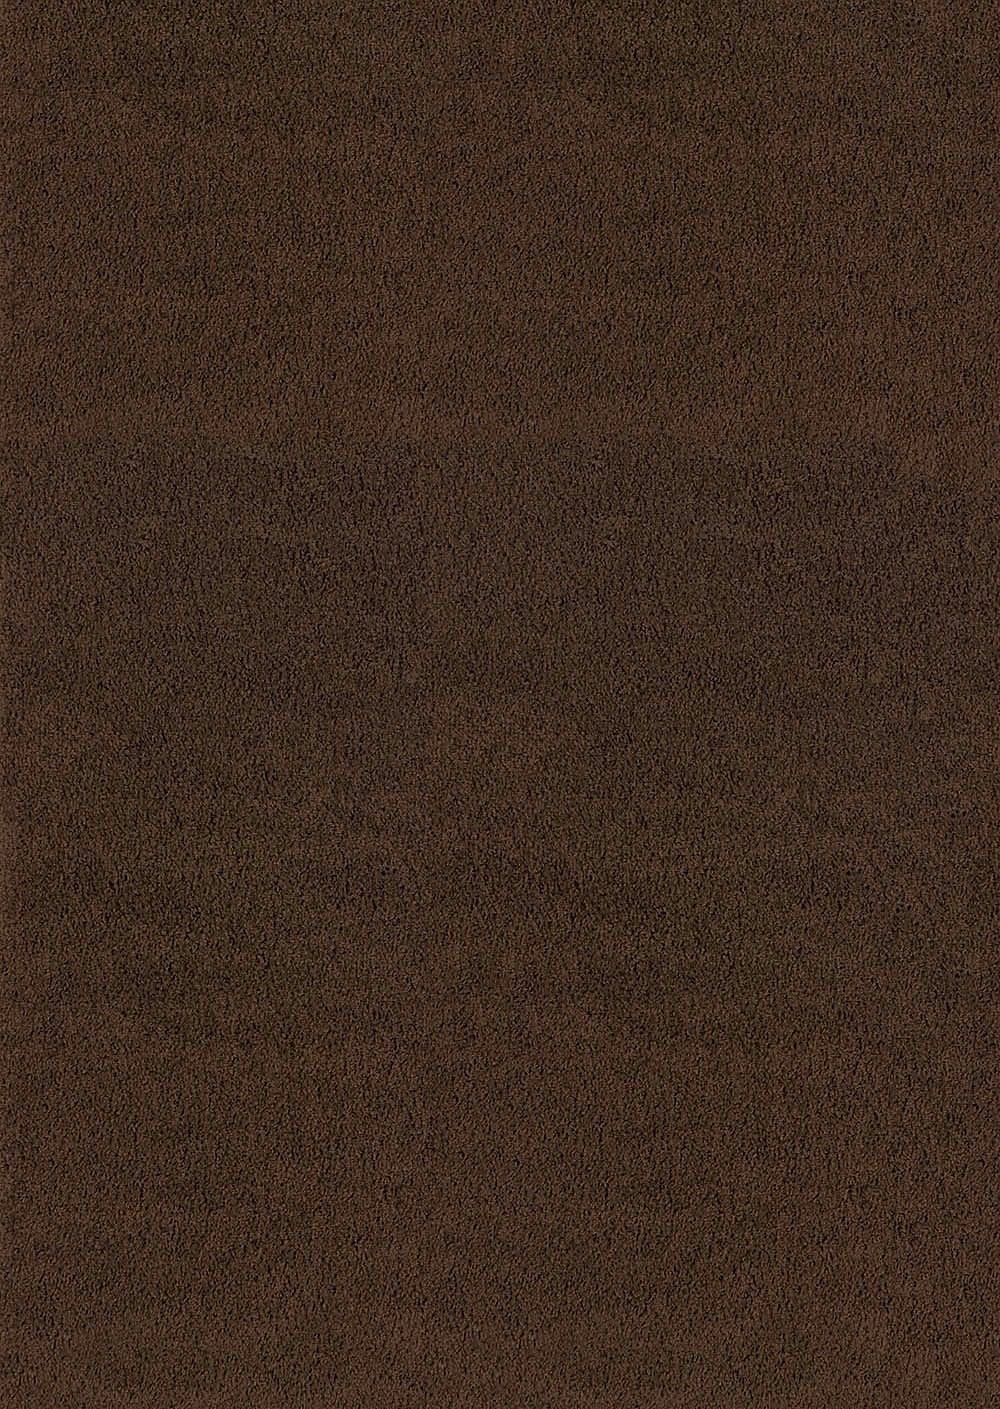 united weavers aria solid/striped area rug collection